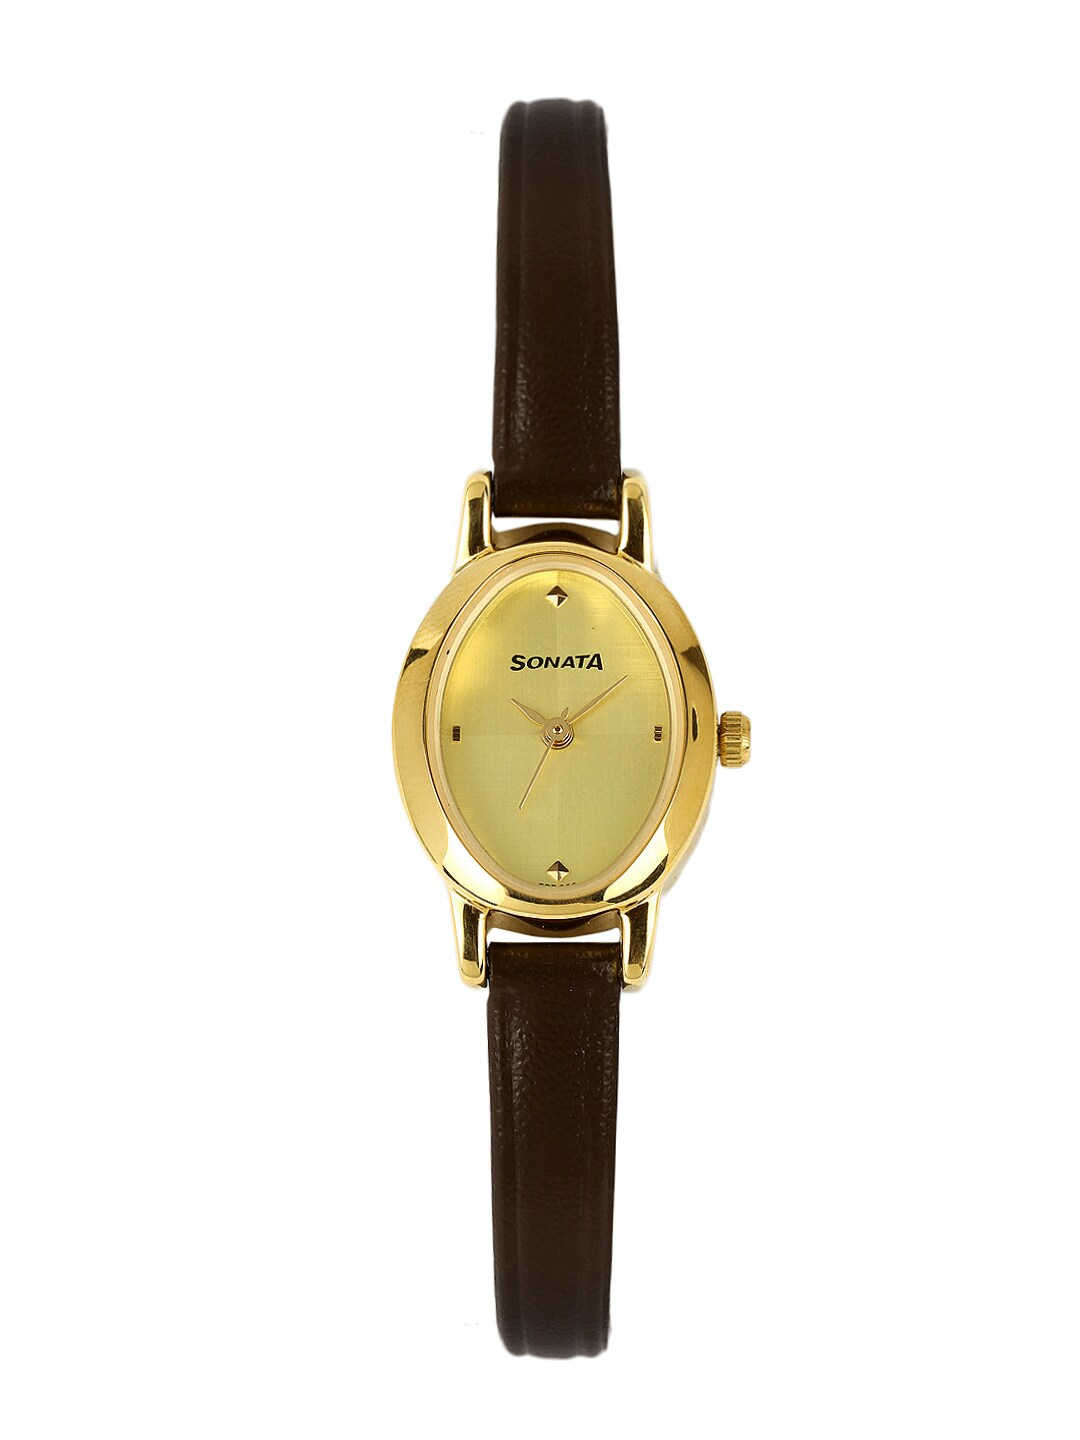 Sonata Women Gold-Toned Dial Watch 8100YL02